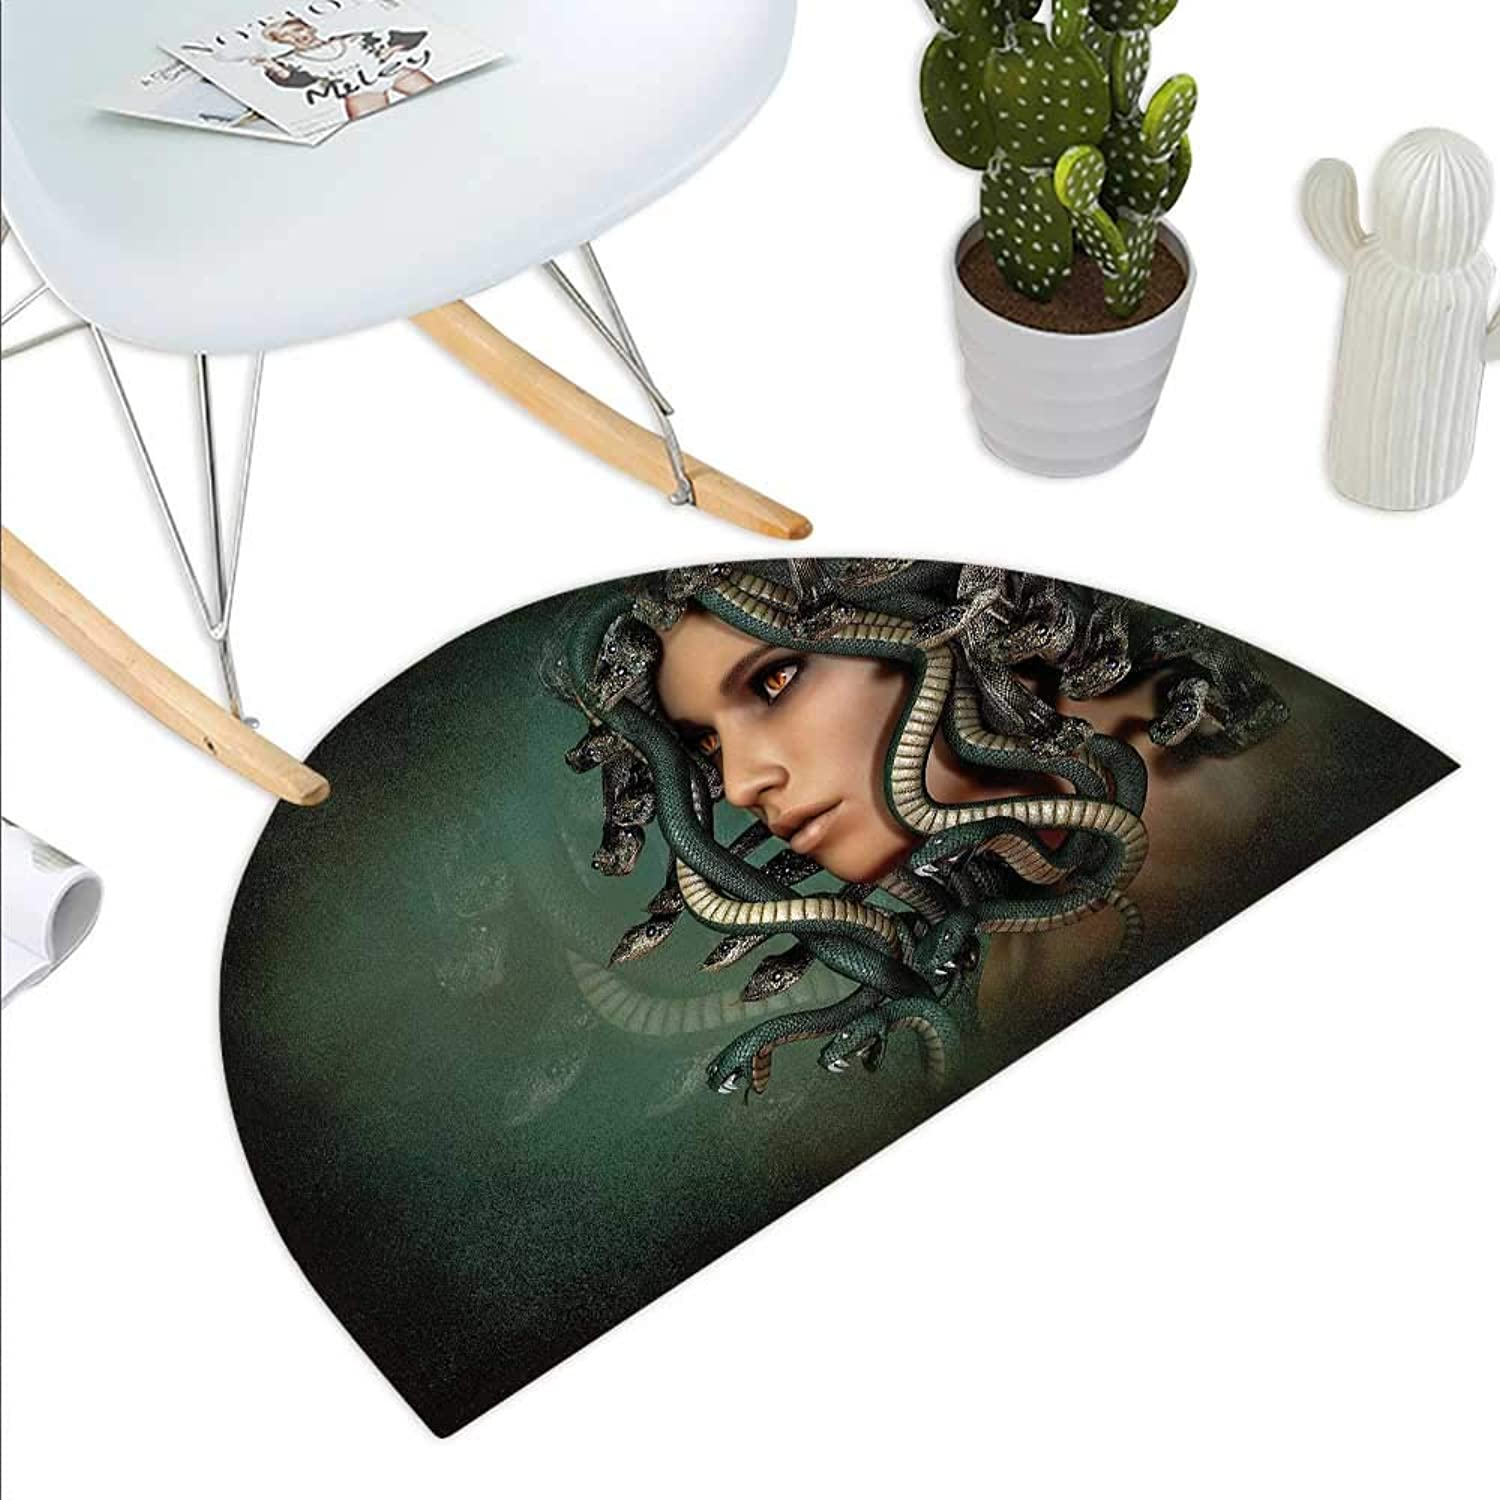 Mythological Semicircle Doormat Spiritual Woman with Snakes on Her Head Sacred Occult Style Zen Meditation Halfmoon doormats H 43.3  xD 64.9  Green Tan